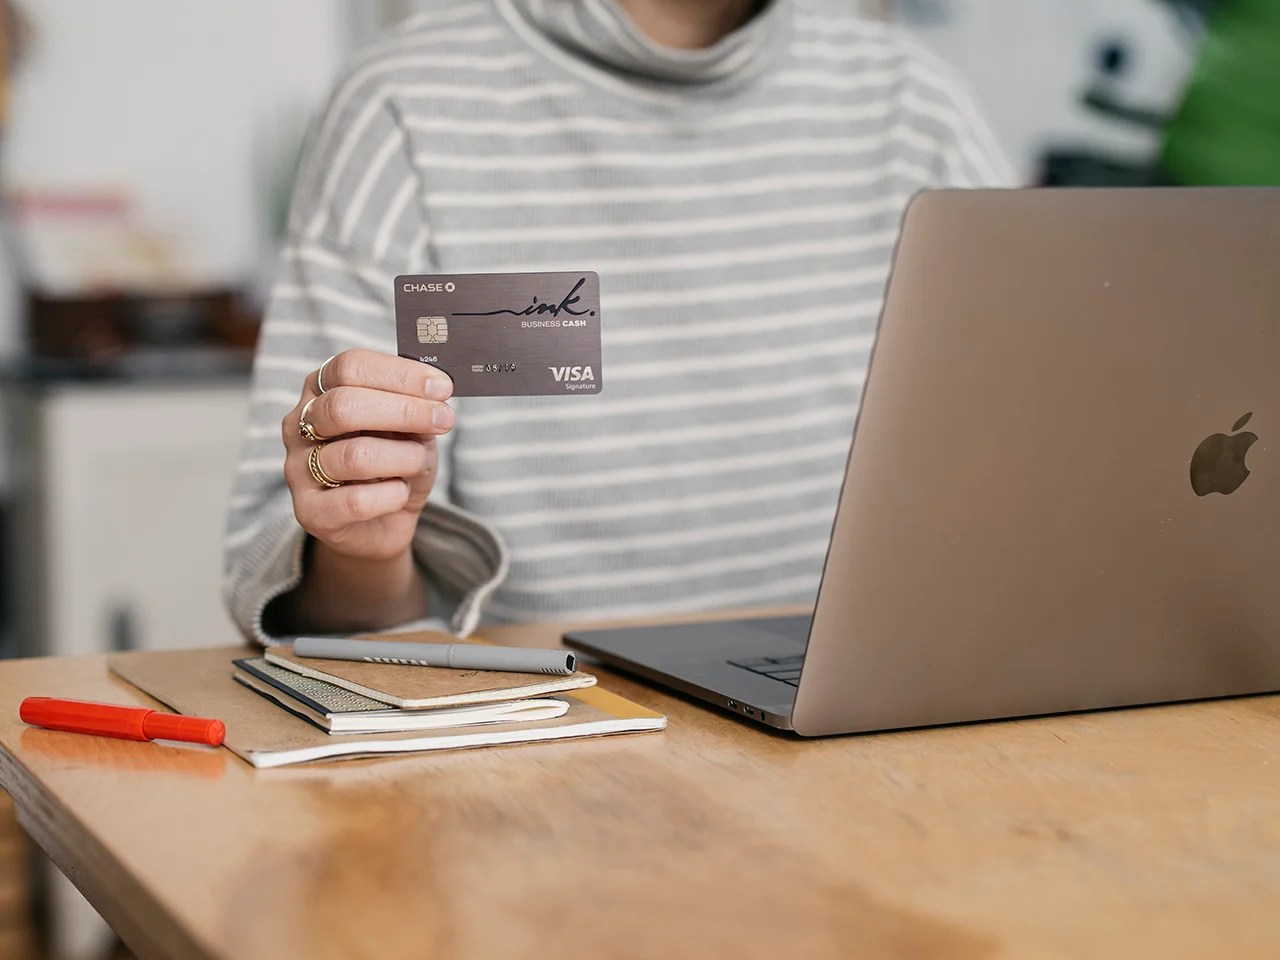 The Best Credit Cards for Purchase Protection in 2018